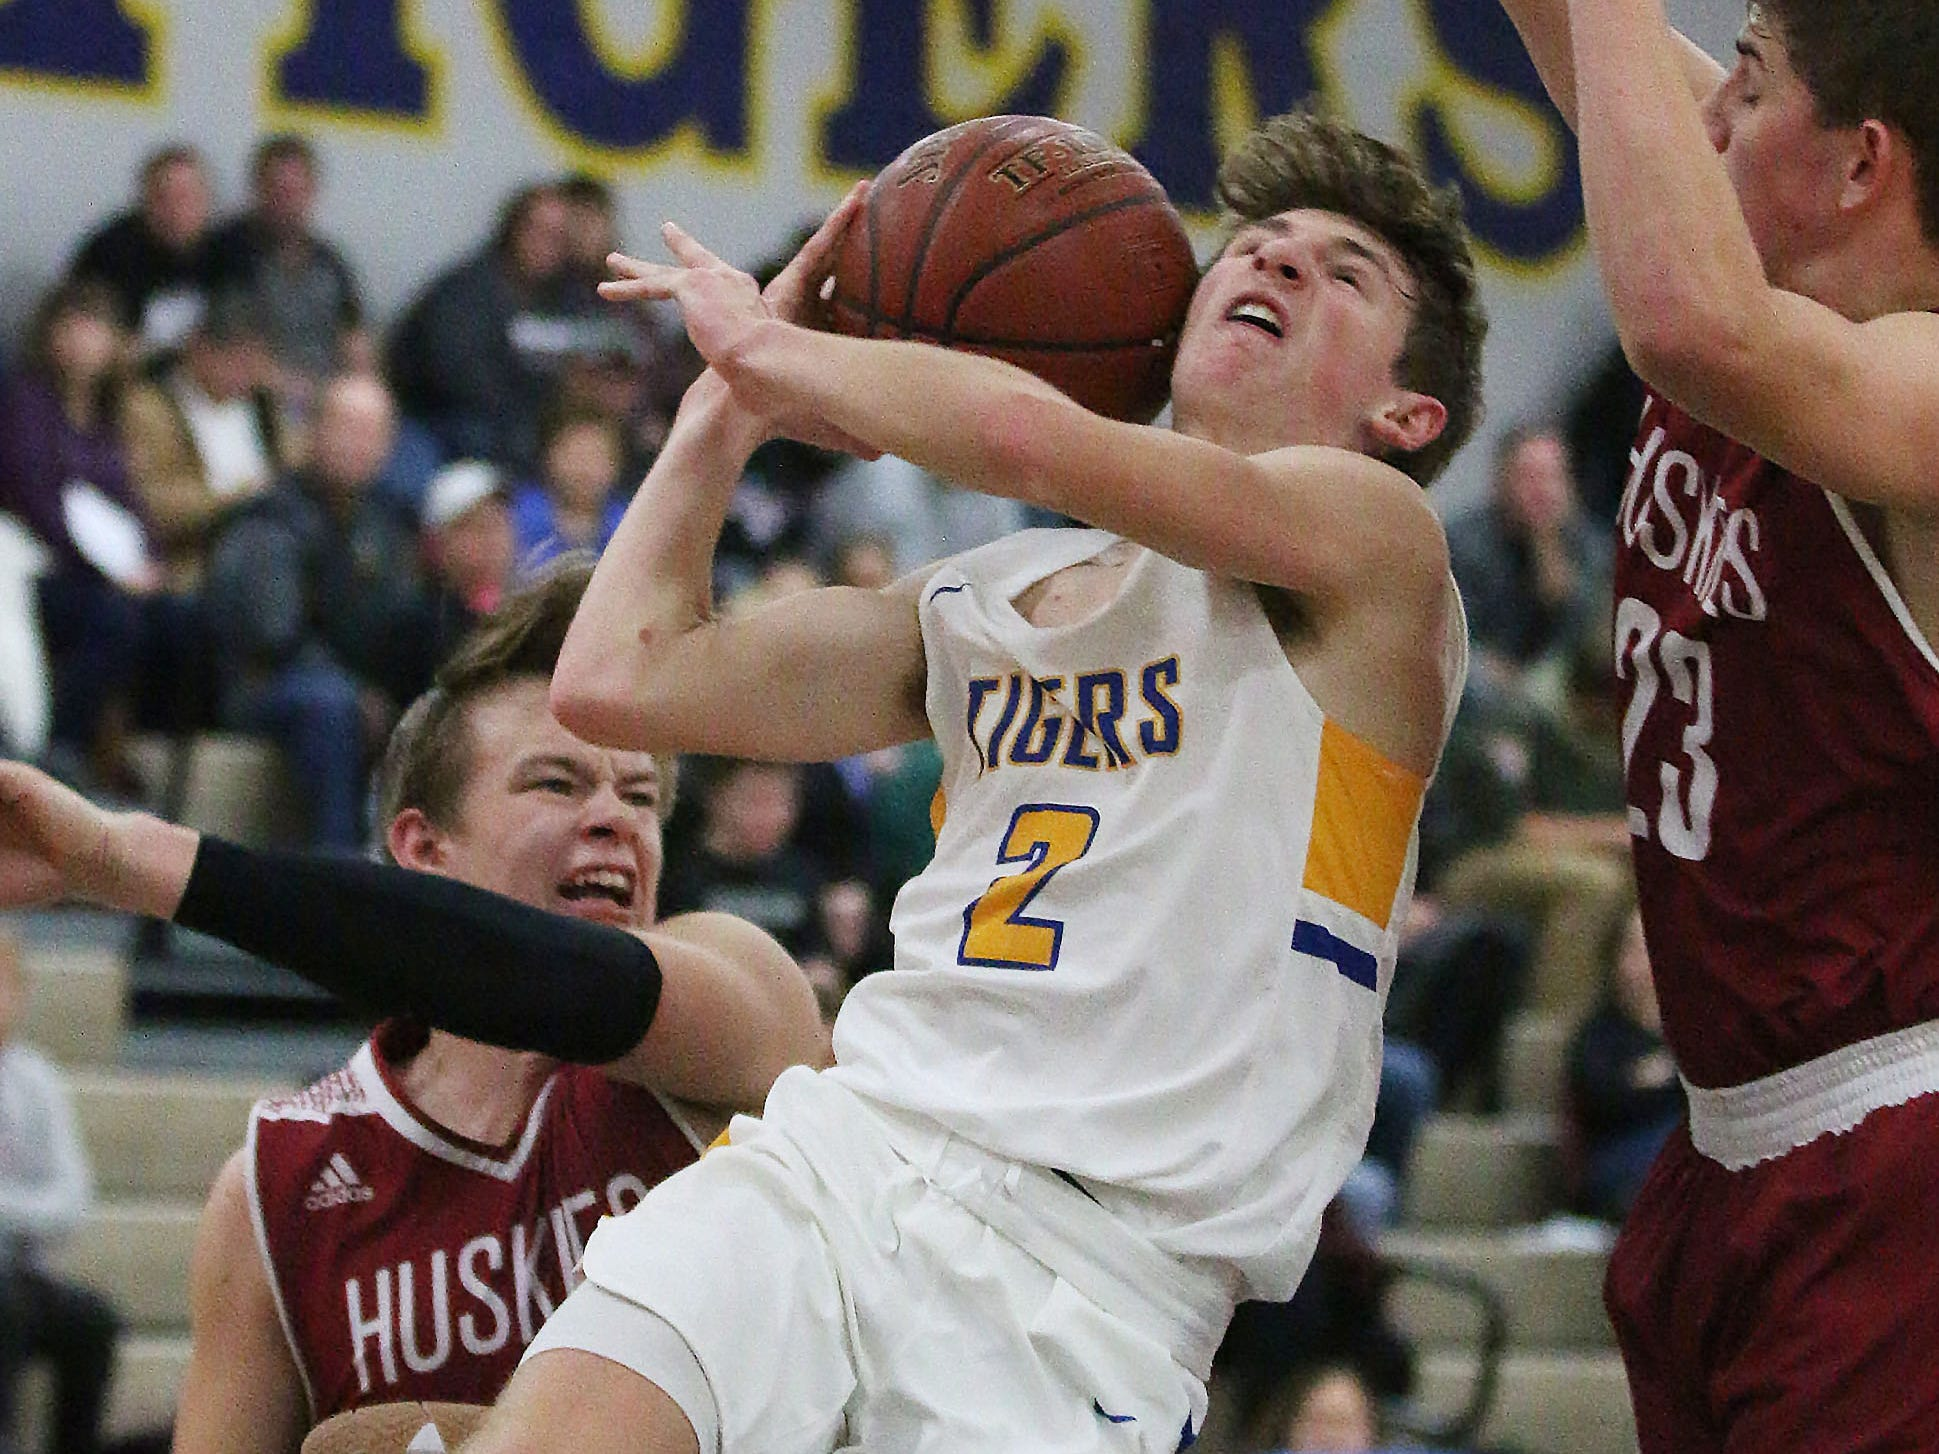 Howards Grove's Will Rautmann (2) struggles to aim the ball against New Holstein, Friday, November 30, 2018, in Howards Grove, Wis.